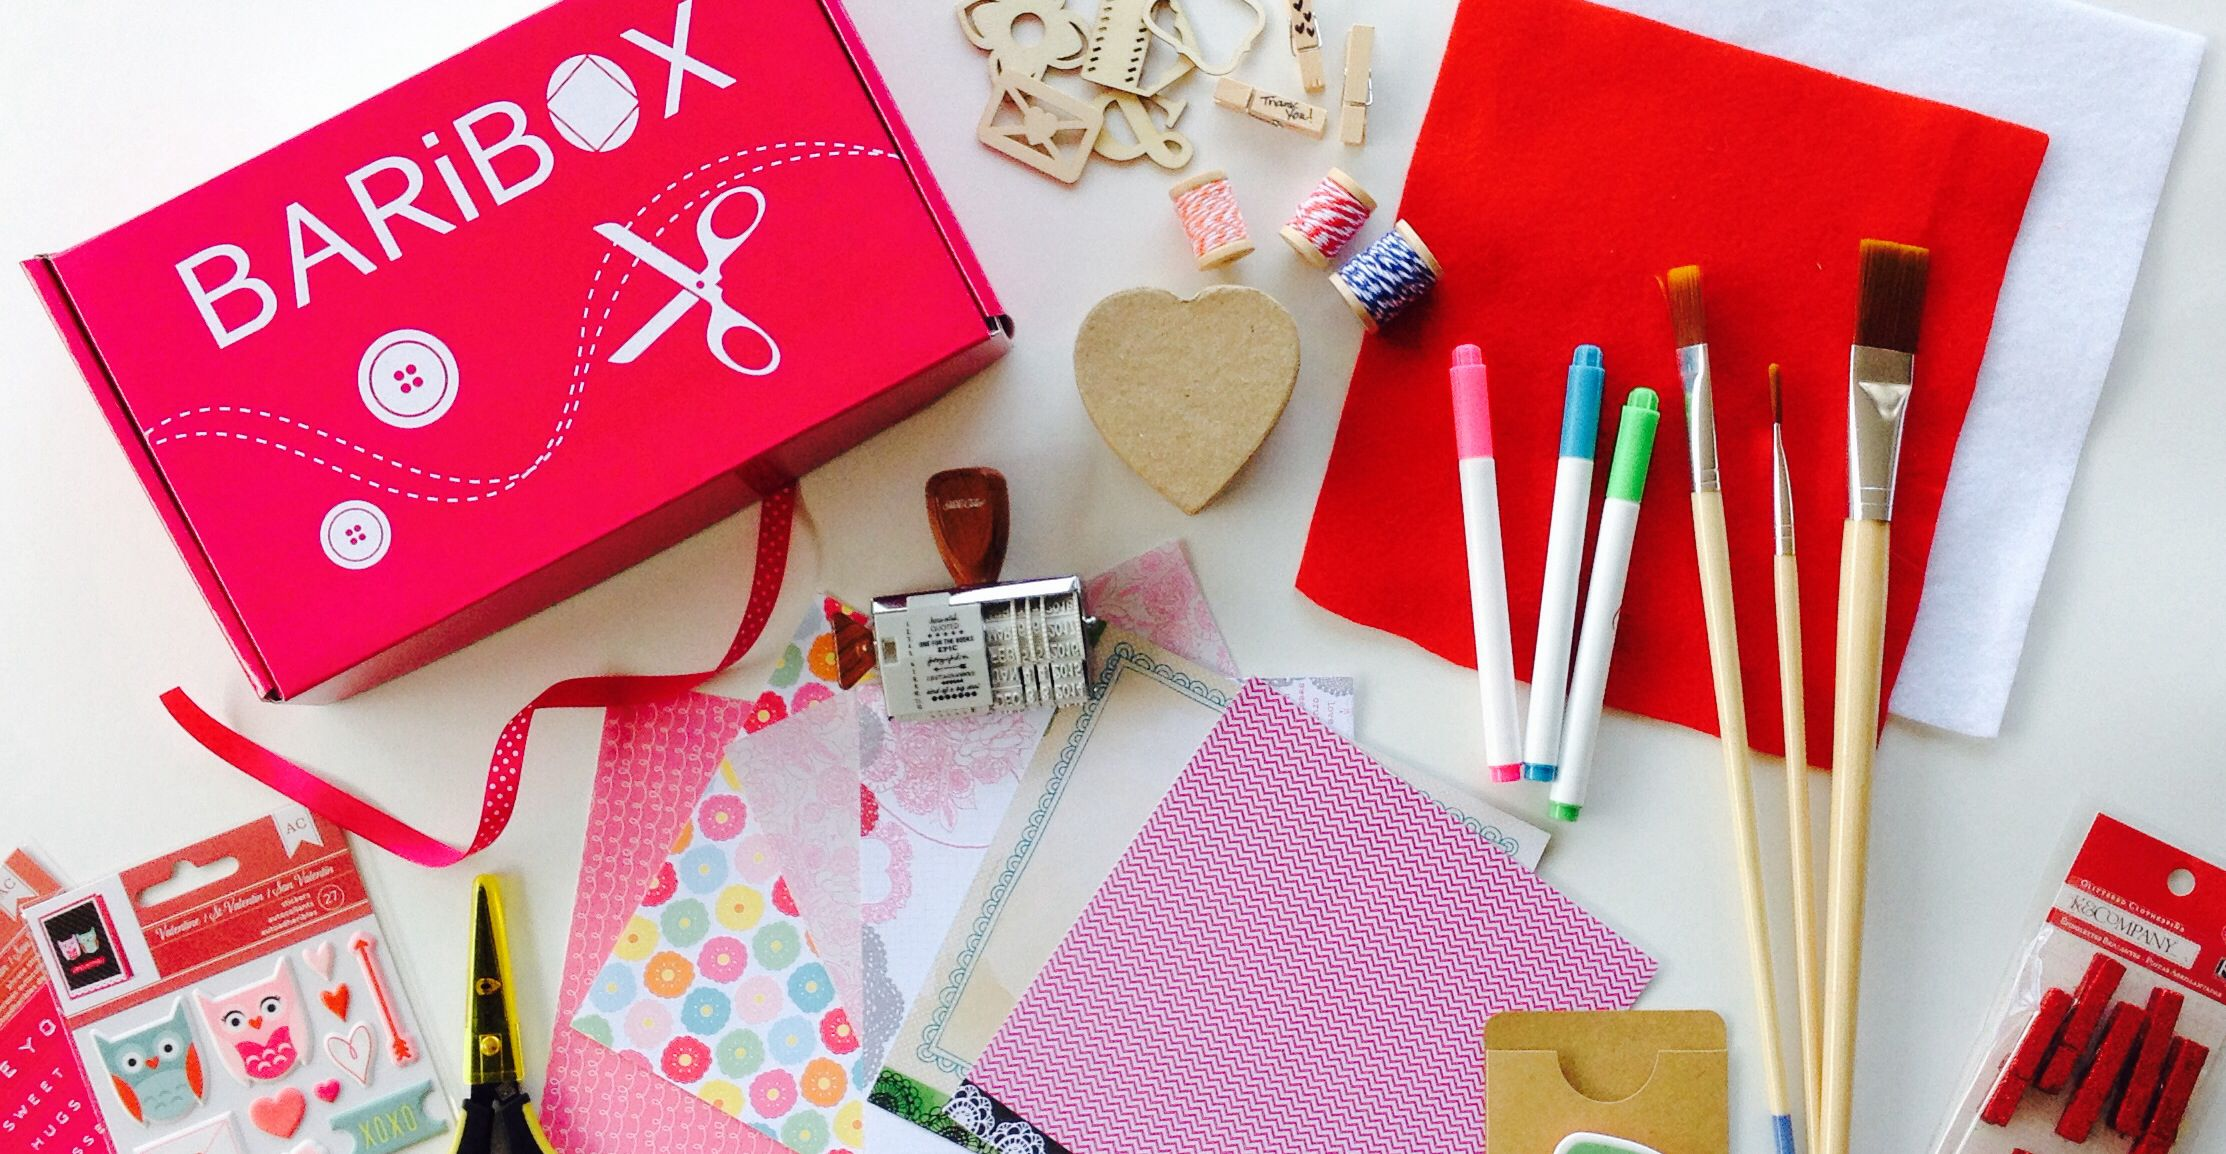 Baribox A Paper Crafting Service Www Baribox Com Lifestyle